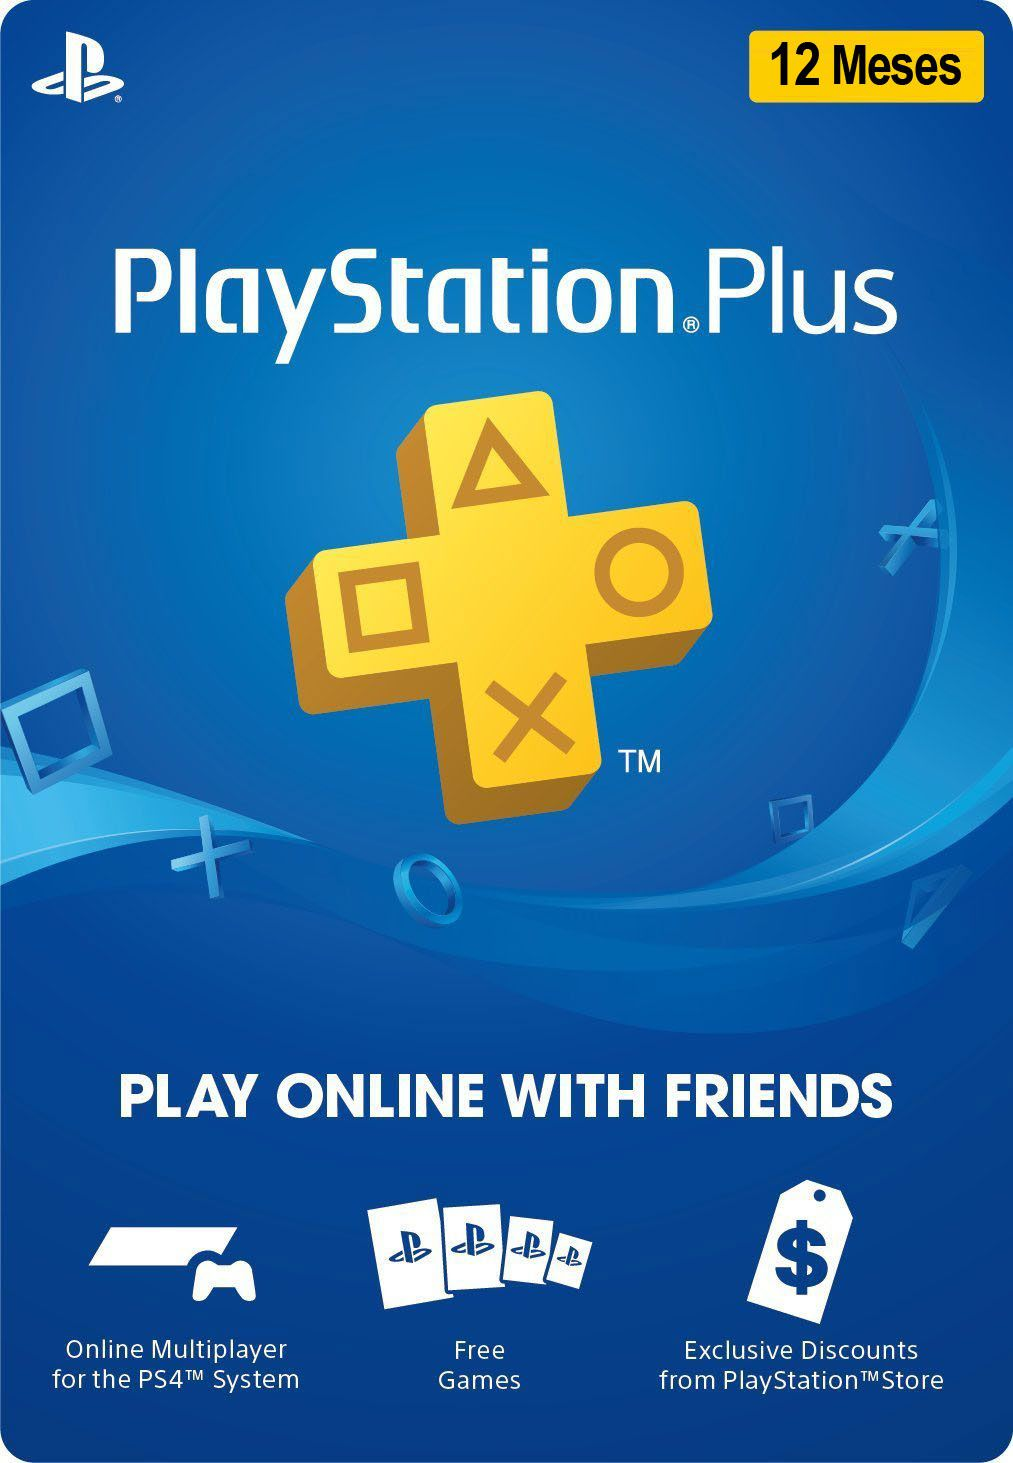 Playstation Plus 12 Meses Membership [PROMO 25% OFF]